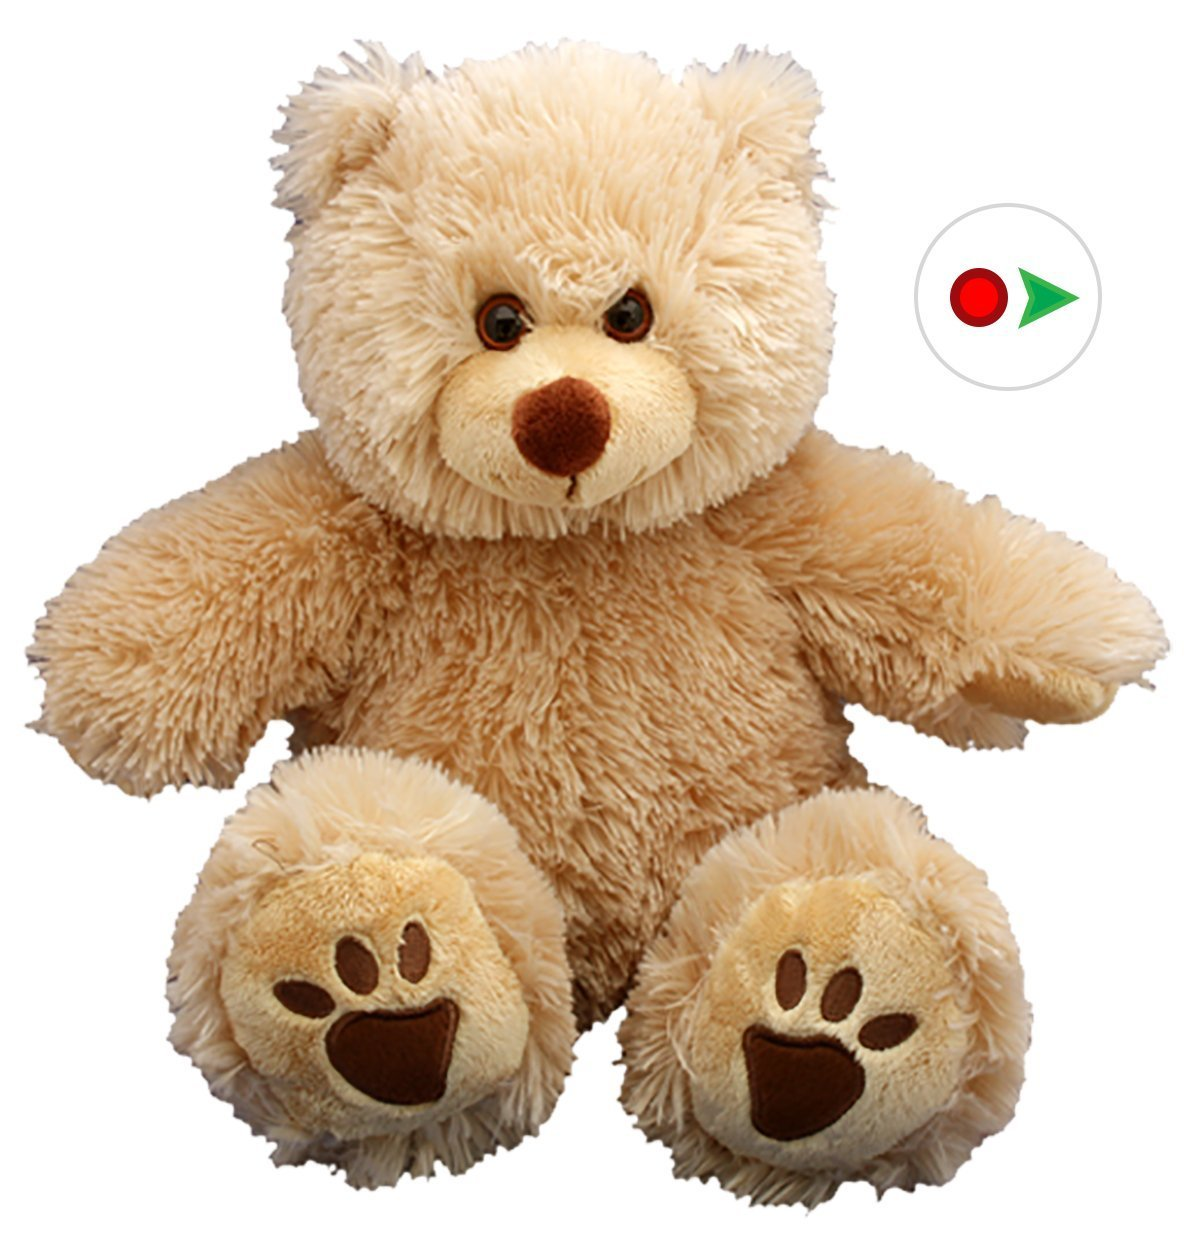 Record Your Own Plush 16 inch Brown Bear - Ready To Love In A Few Easy Steps